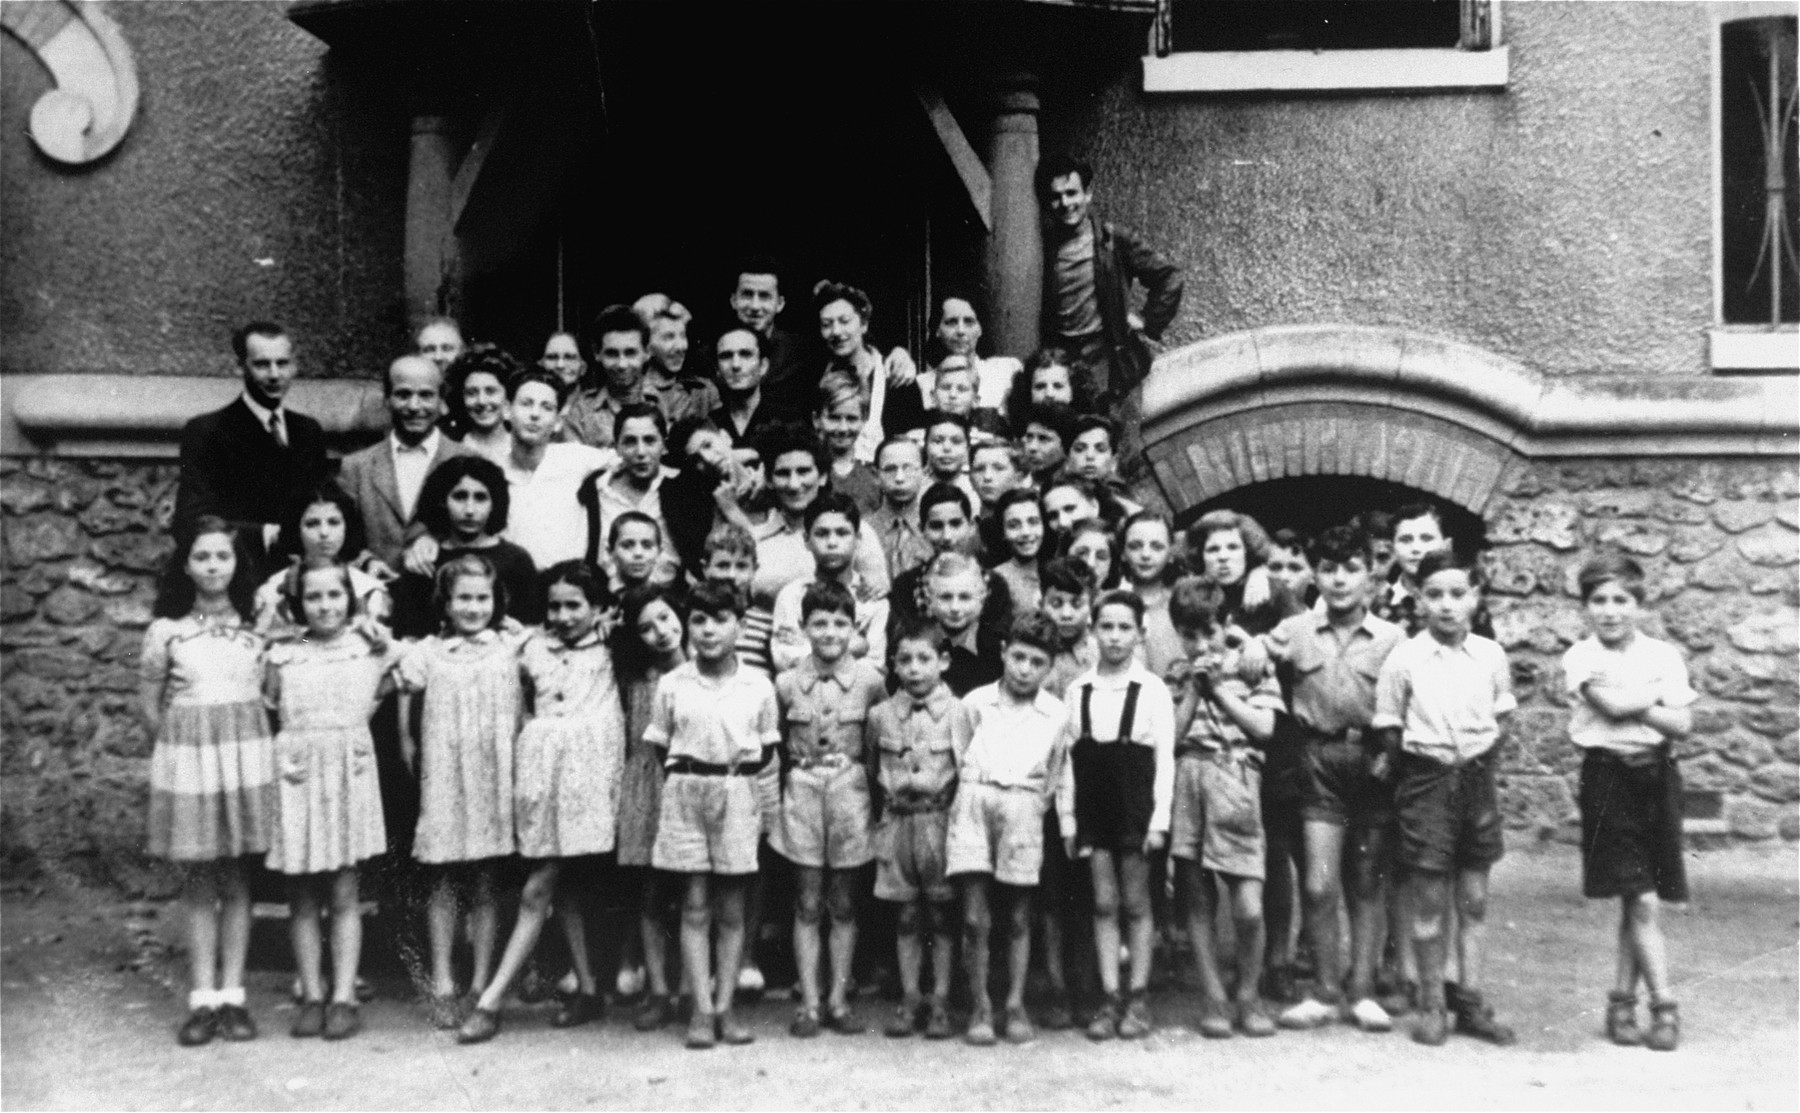 Group portrait of Jewish children in front of the OSE Home in Draveil.